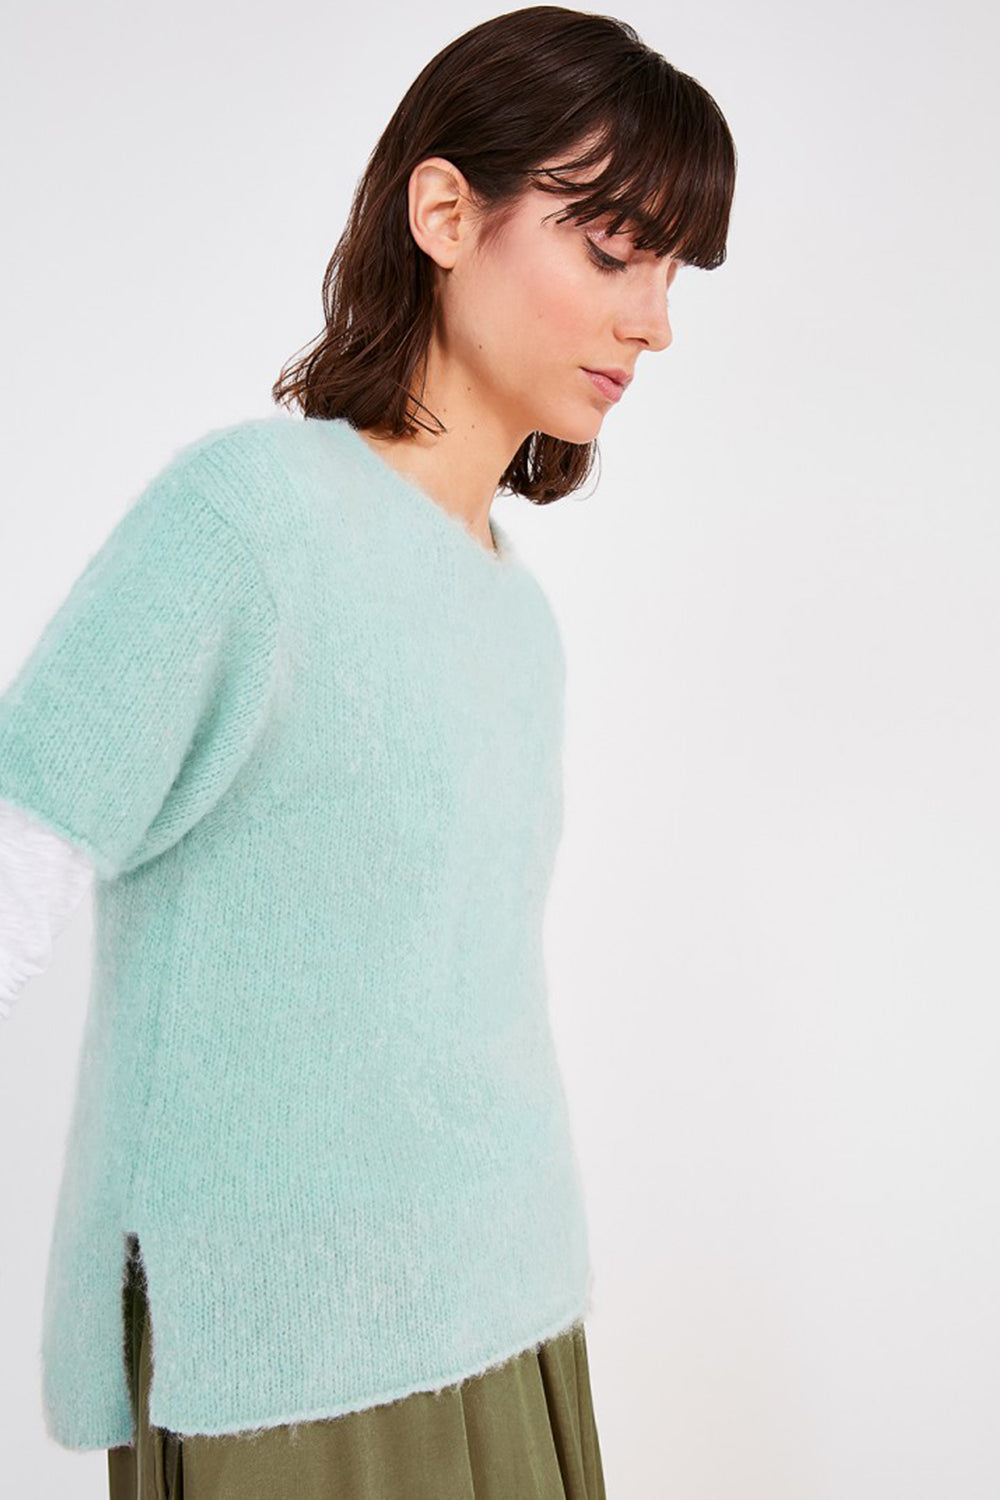 American Vintage / Vintage Vacaville Short Sleeve Knit / Baby Blue